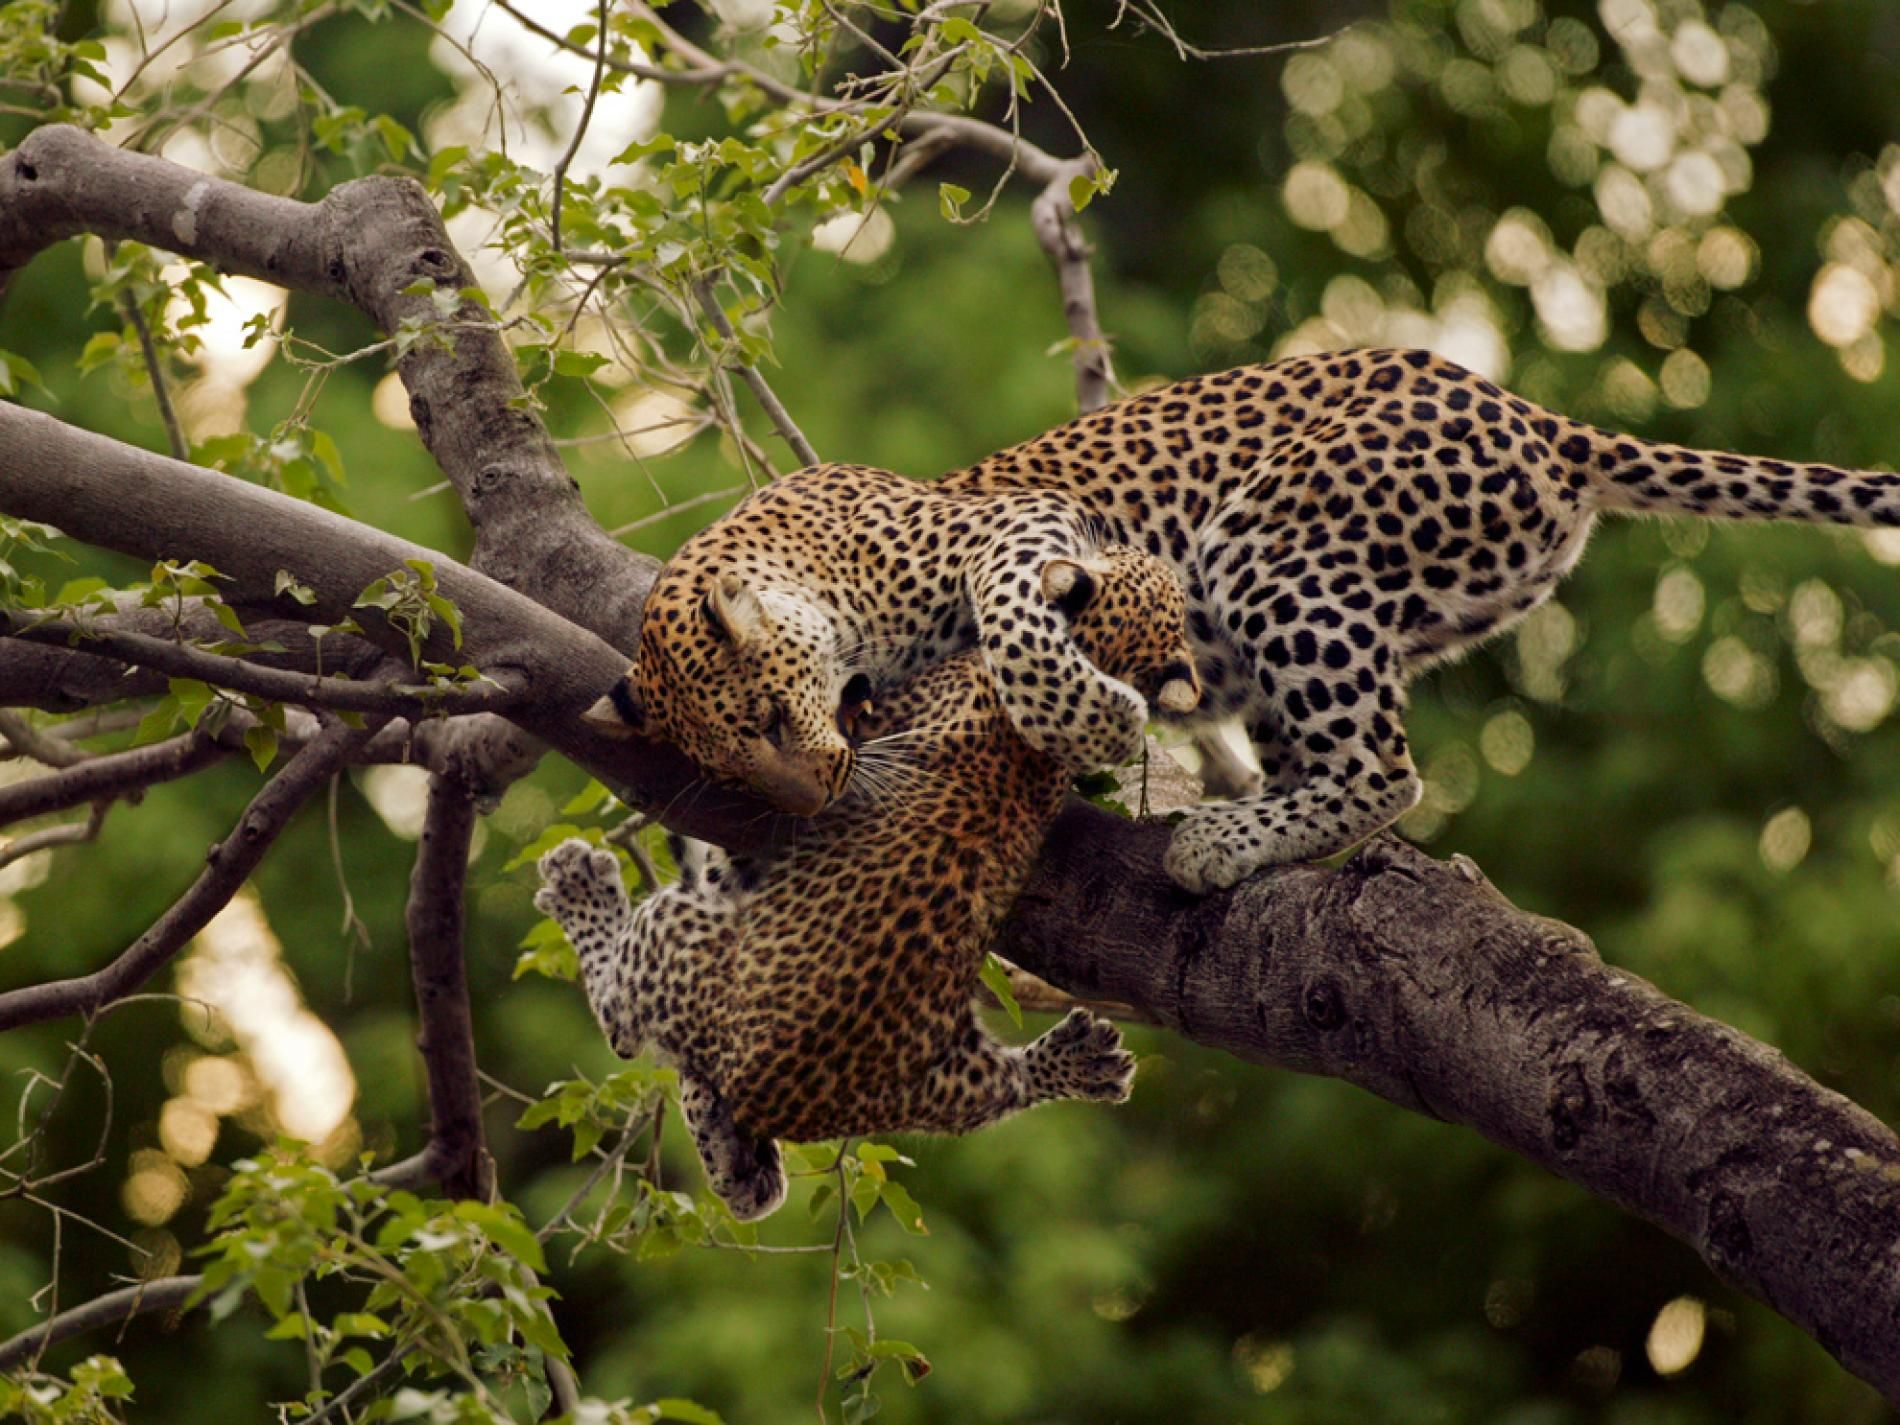 A leopard hangs on to her cub